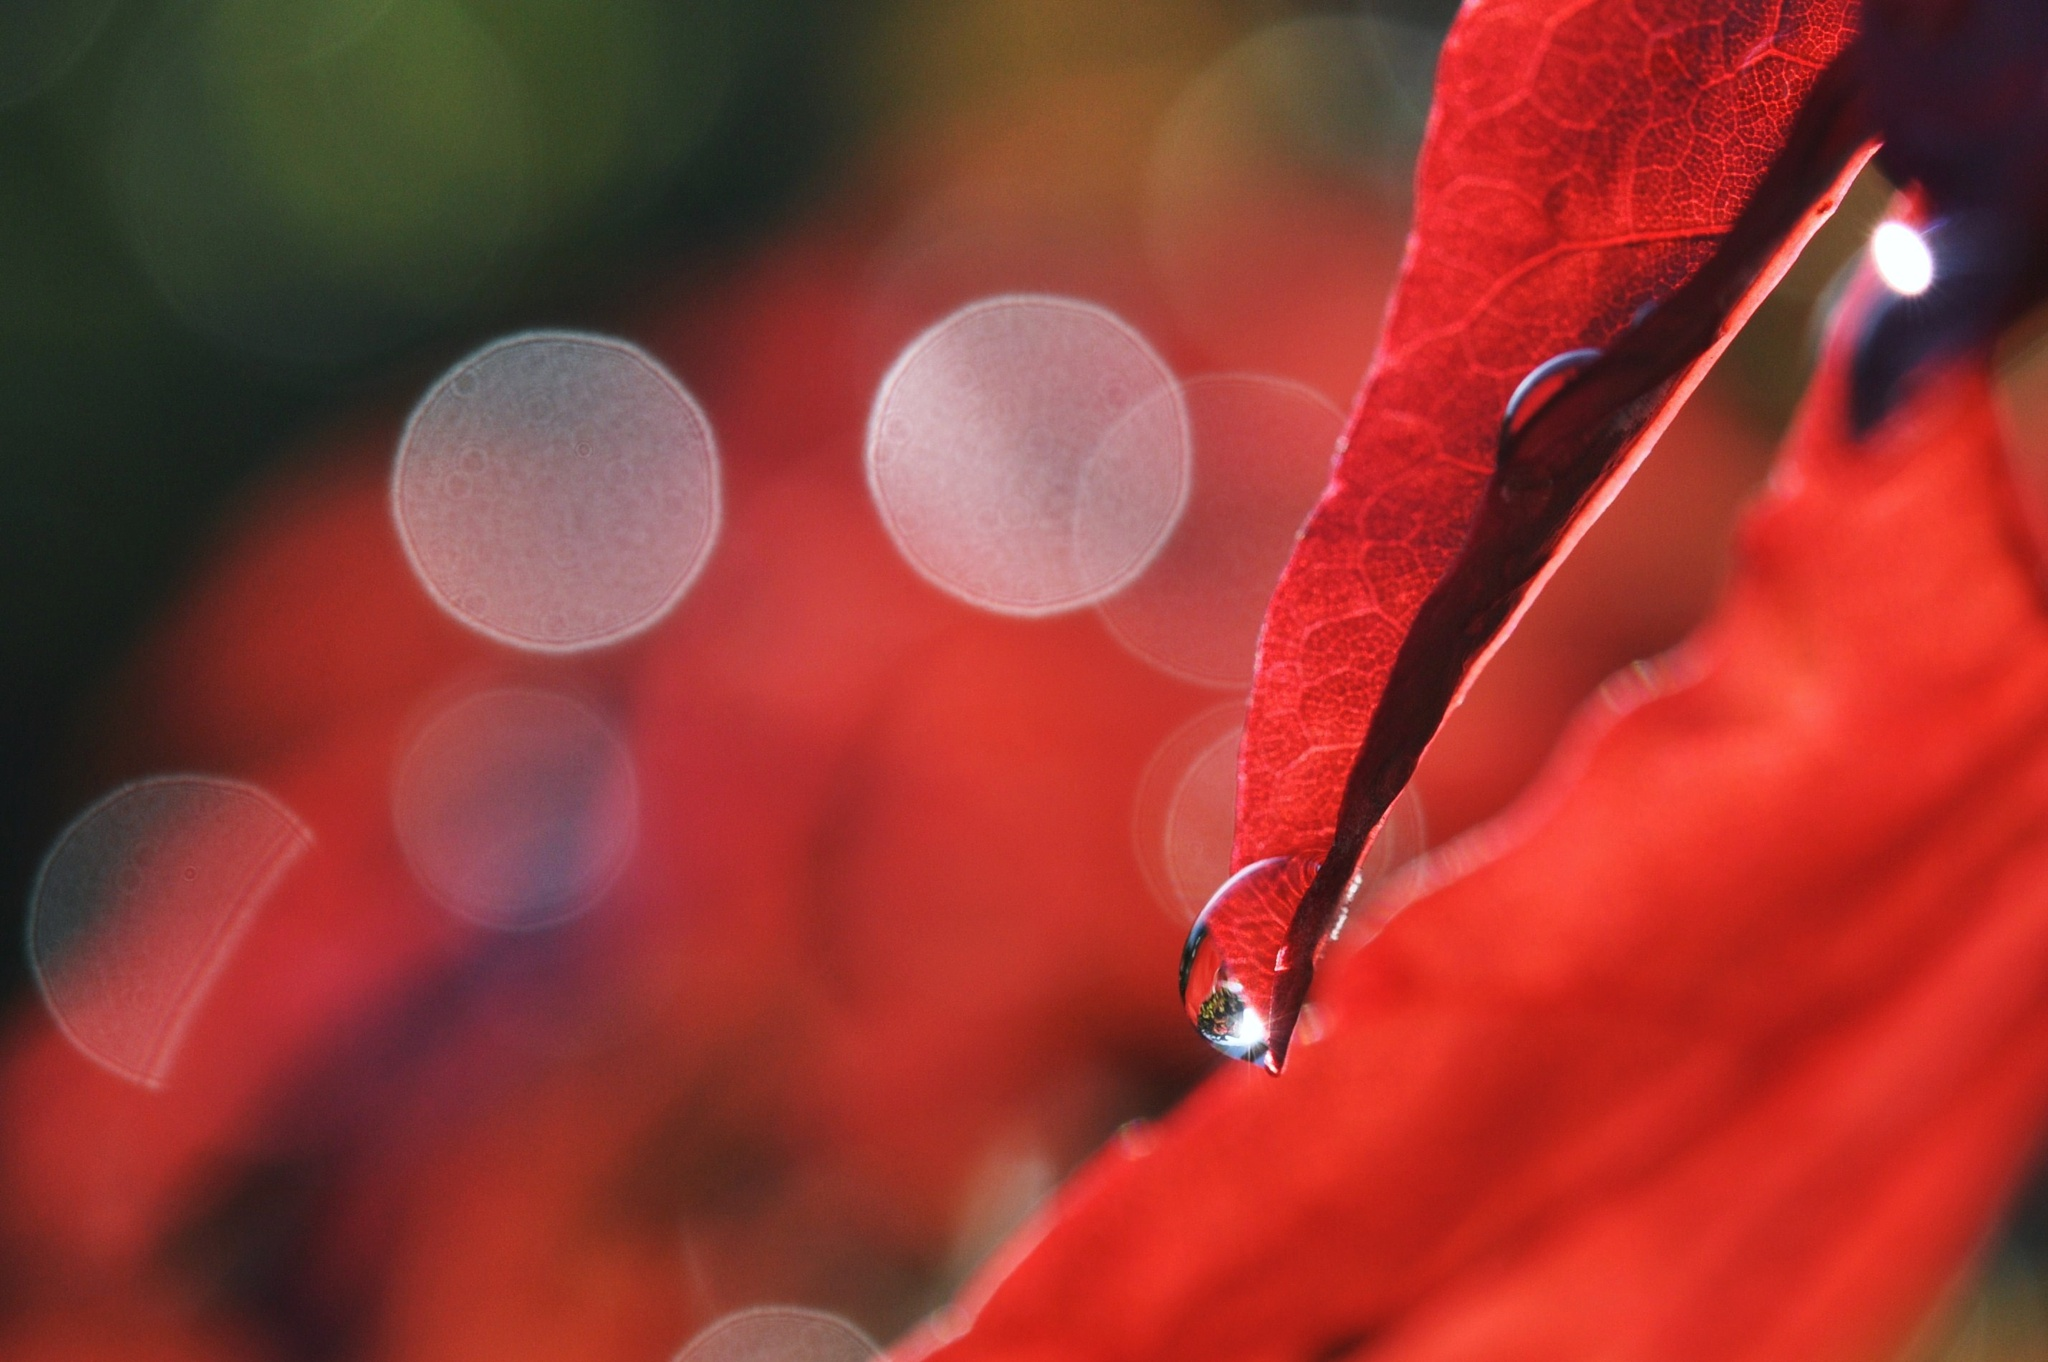 Slips and falls the dew on the ground from a scarlet leaf... by Alla-Rose